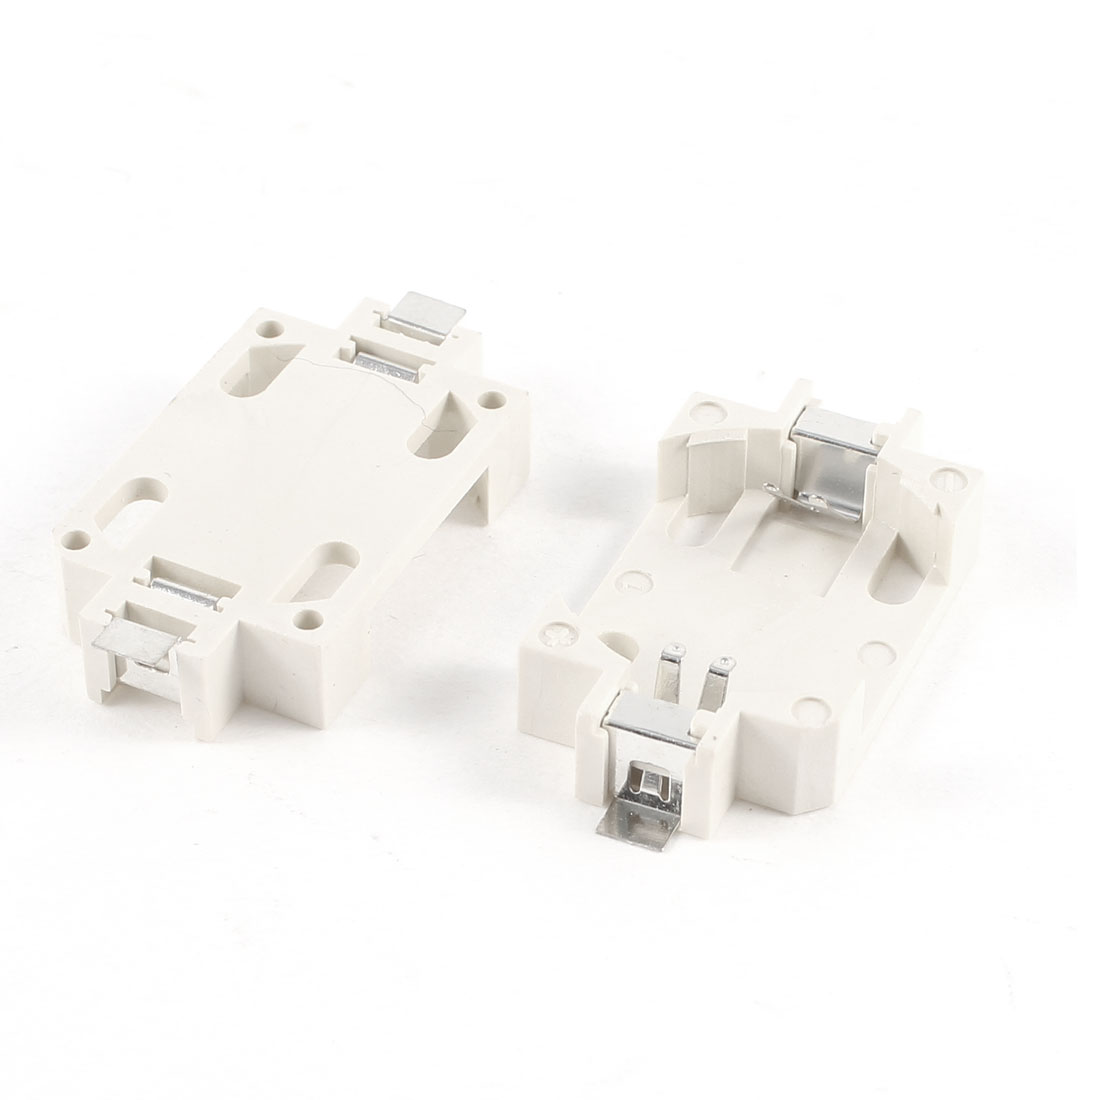 2 Pcs CR2032 Cell Button Battery Socket Holder Case SMD SMT Tin Plated White